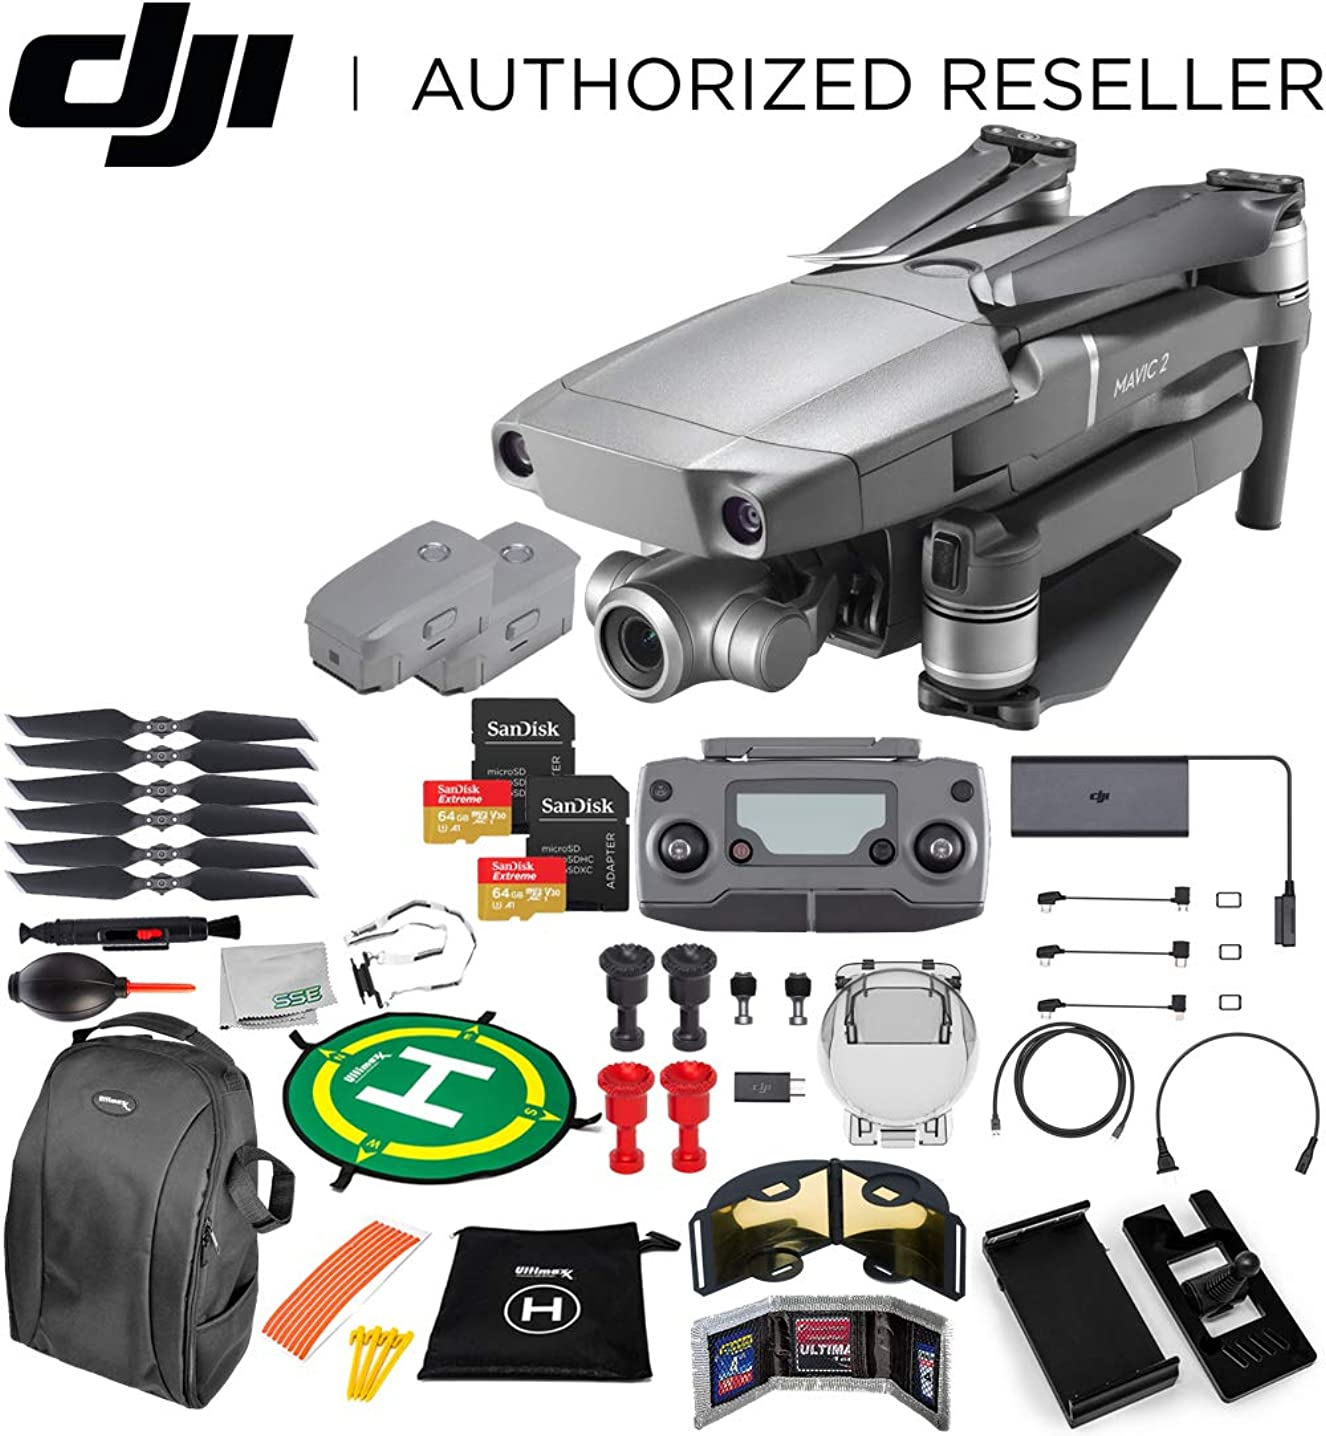 DJI Mavic 2 Zoom Drone Quadcopter with 24-48mm Optical Zoom Camera 2-Battery 128GB Ultimate Bundle